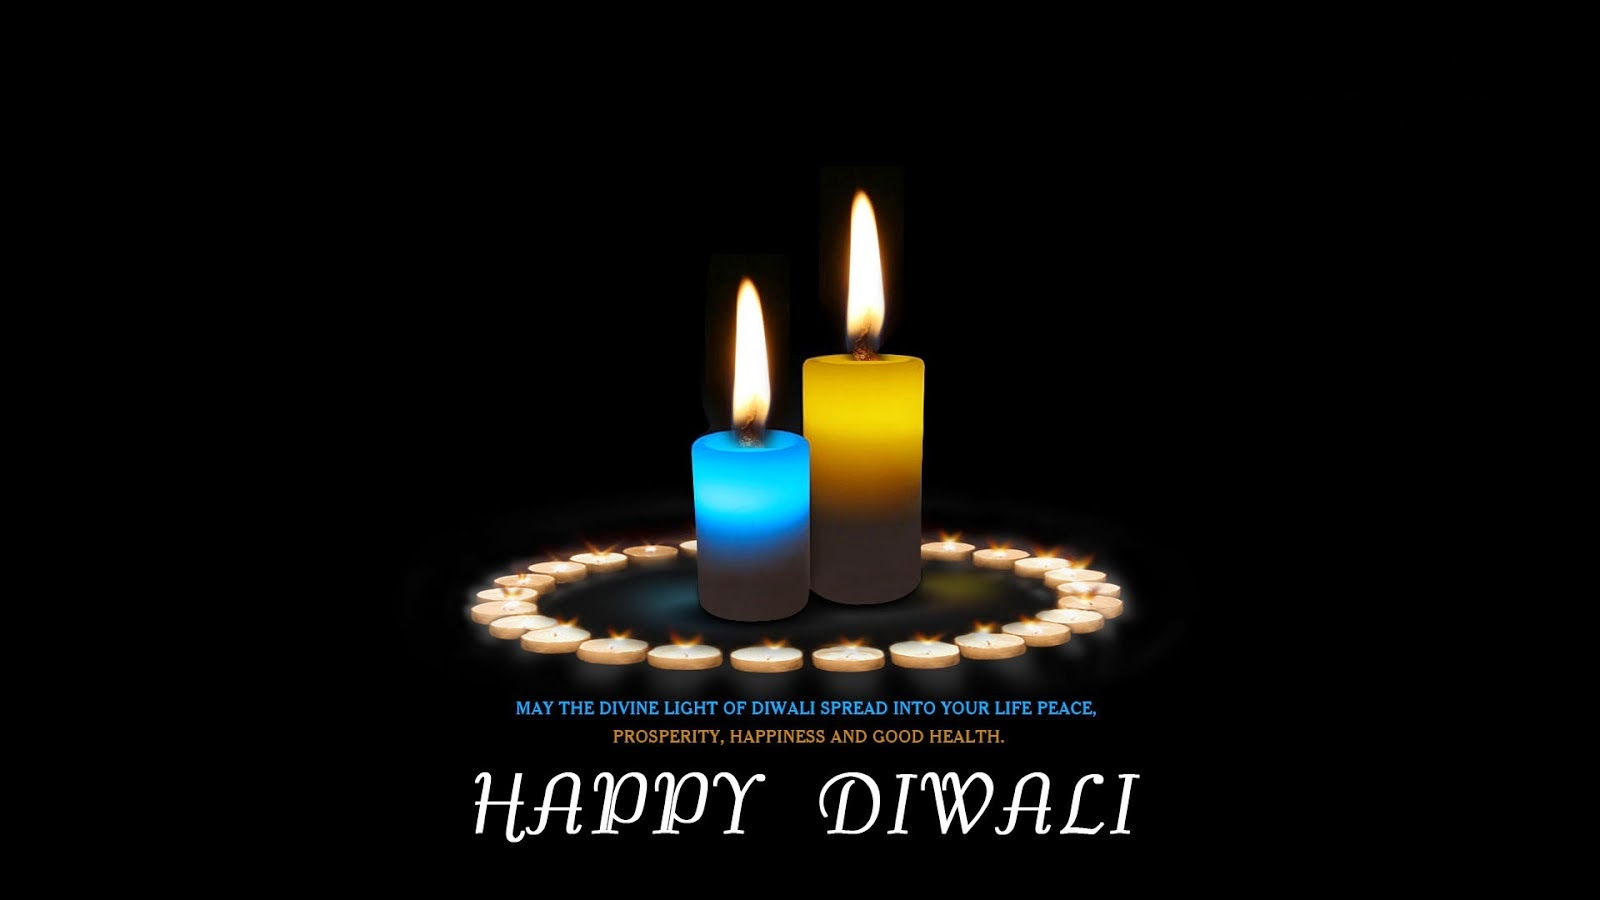 Download Diwali Hd Wallpapers 2016: Desktop Background: Free Download Hd Diwali Wallpapers